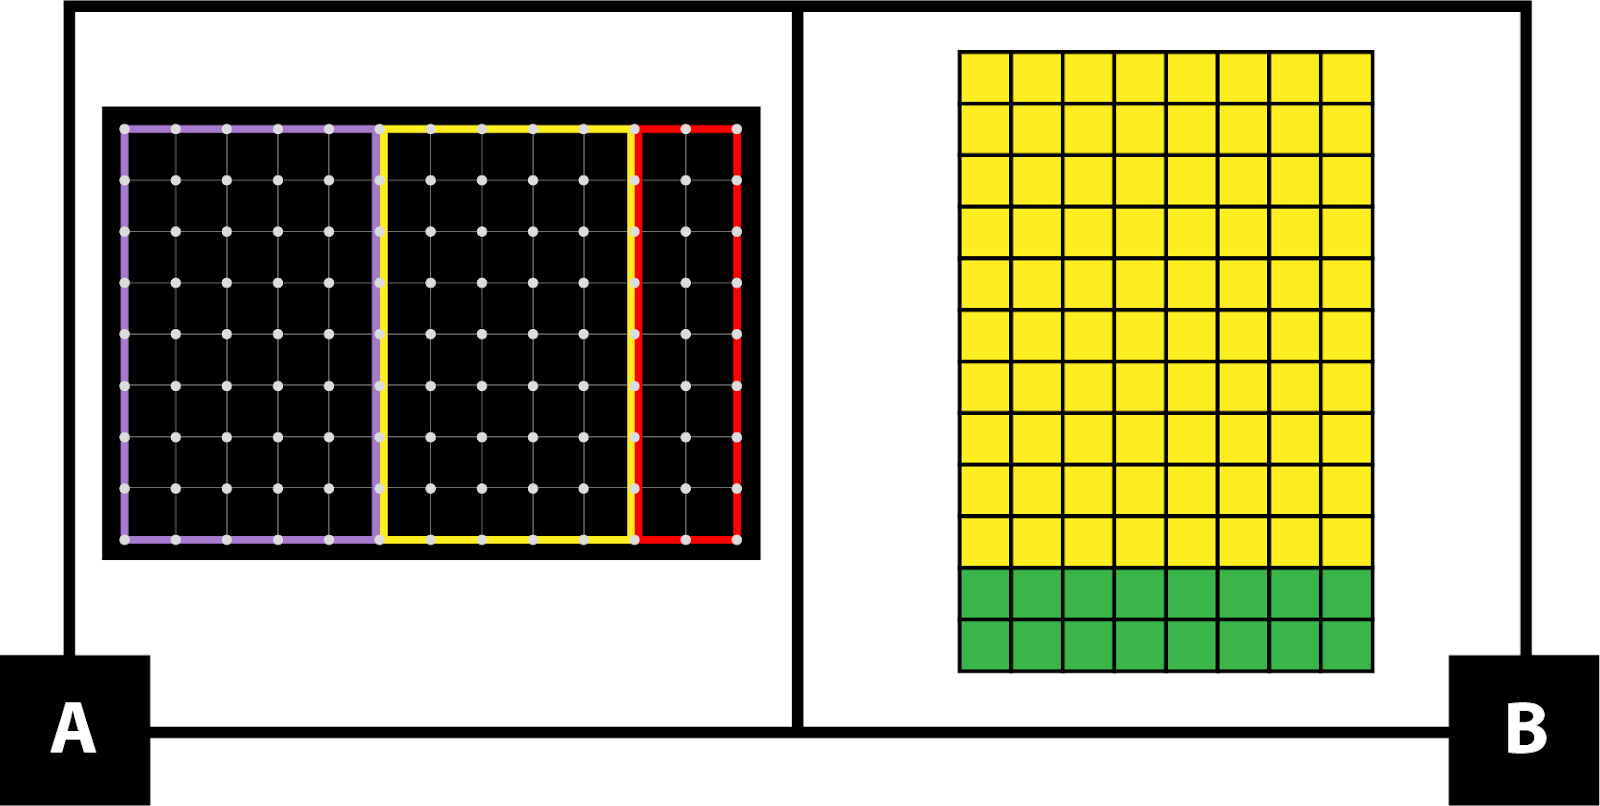 A: a geoboard with a purple rectangle of 8 by 5, a yellow rectangle of 8 by 5, and a red rectangle of 8 by 2. B: Number pieces make an array of 12 row and 8 columns with 10 rows yellow and 2 rows green.